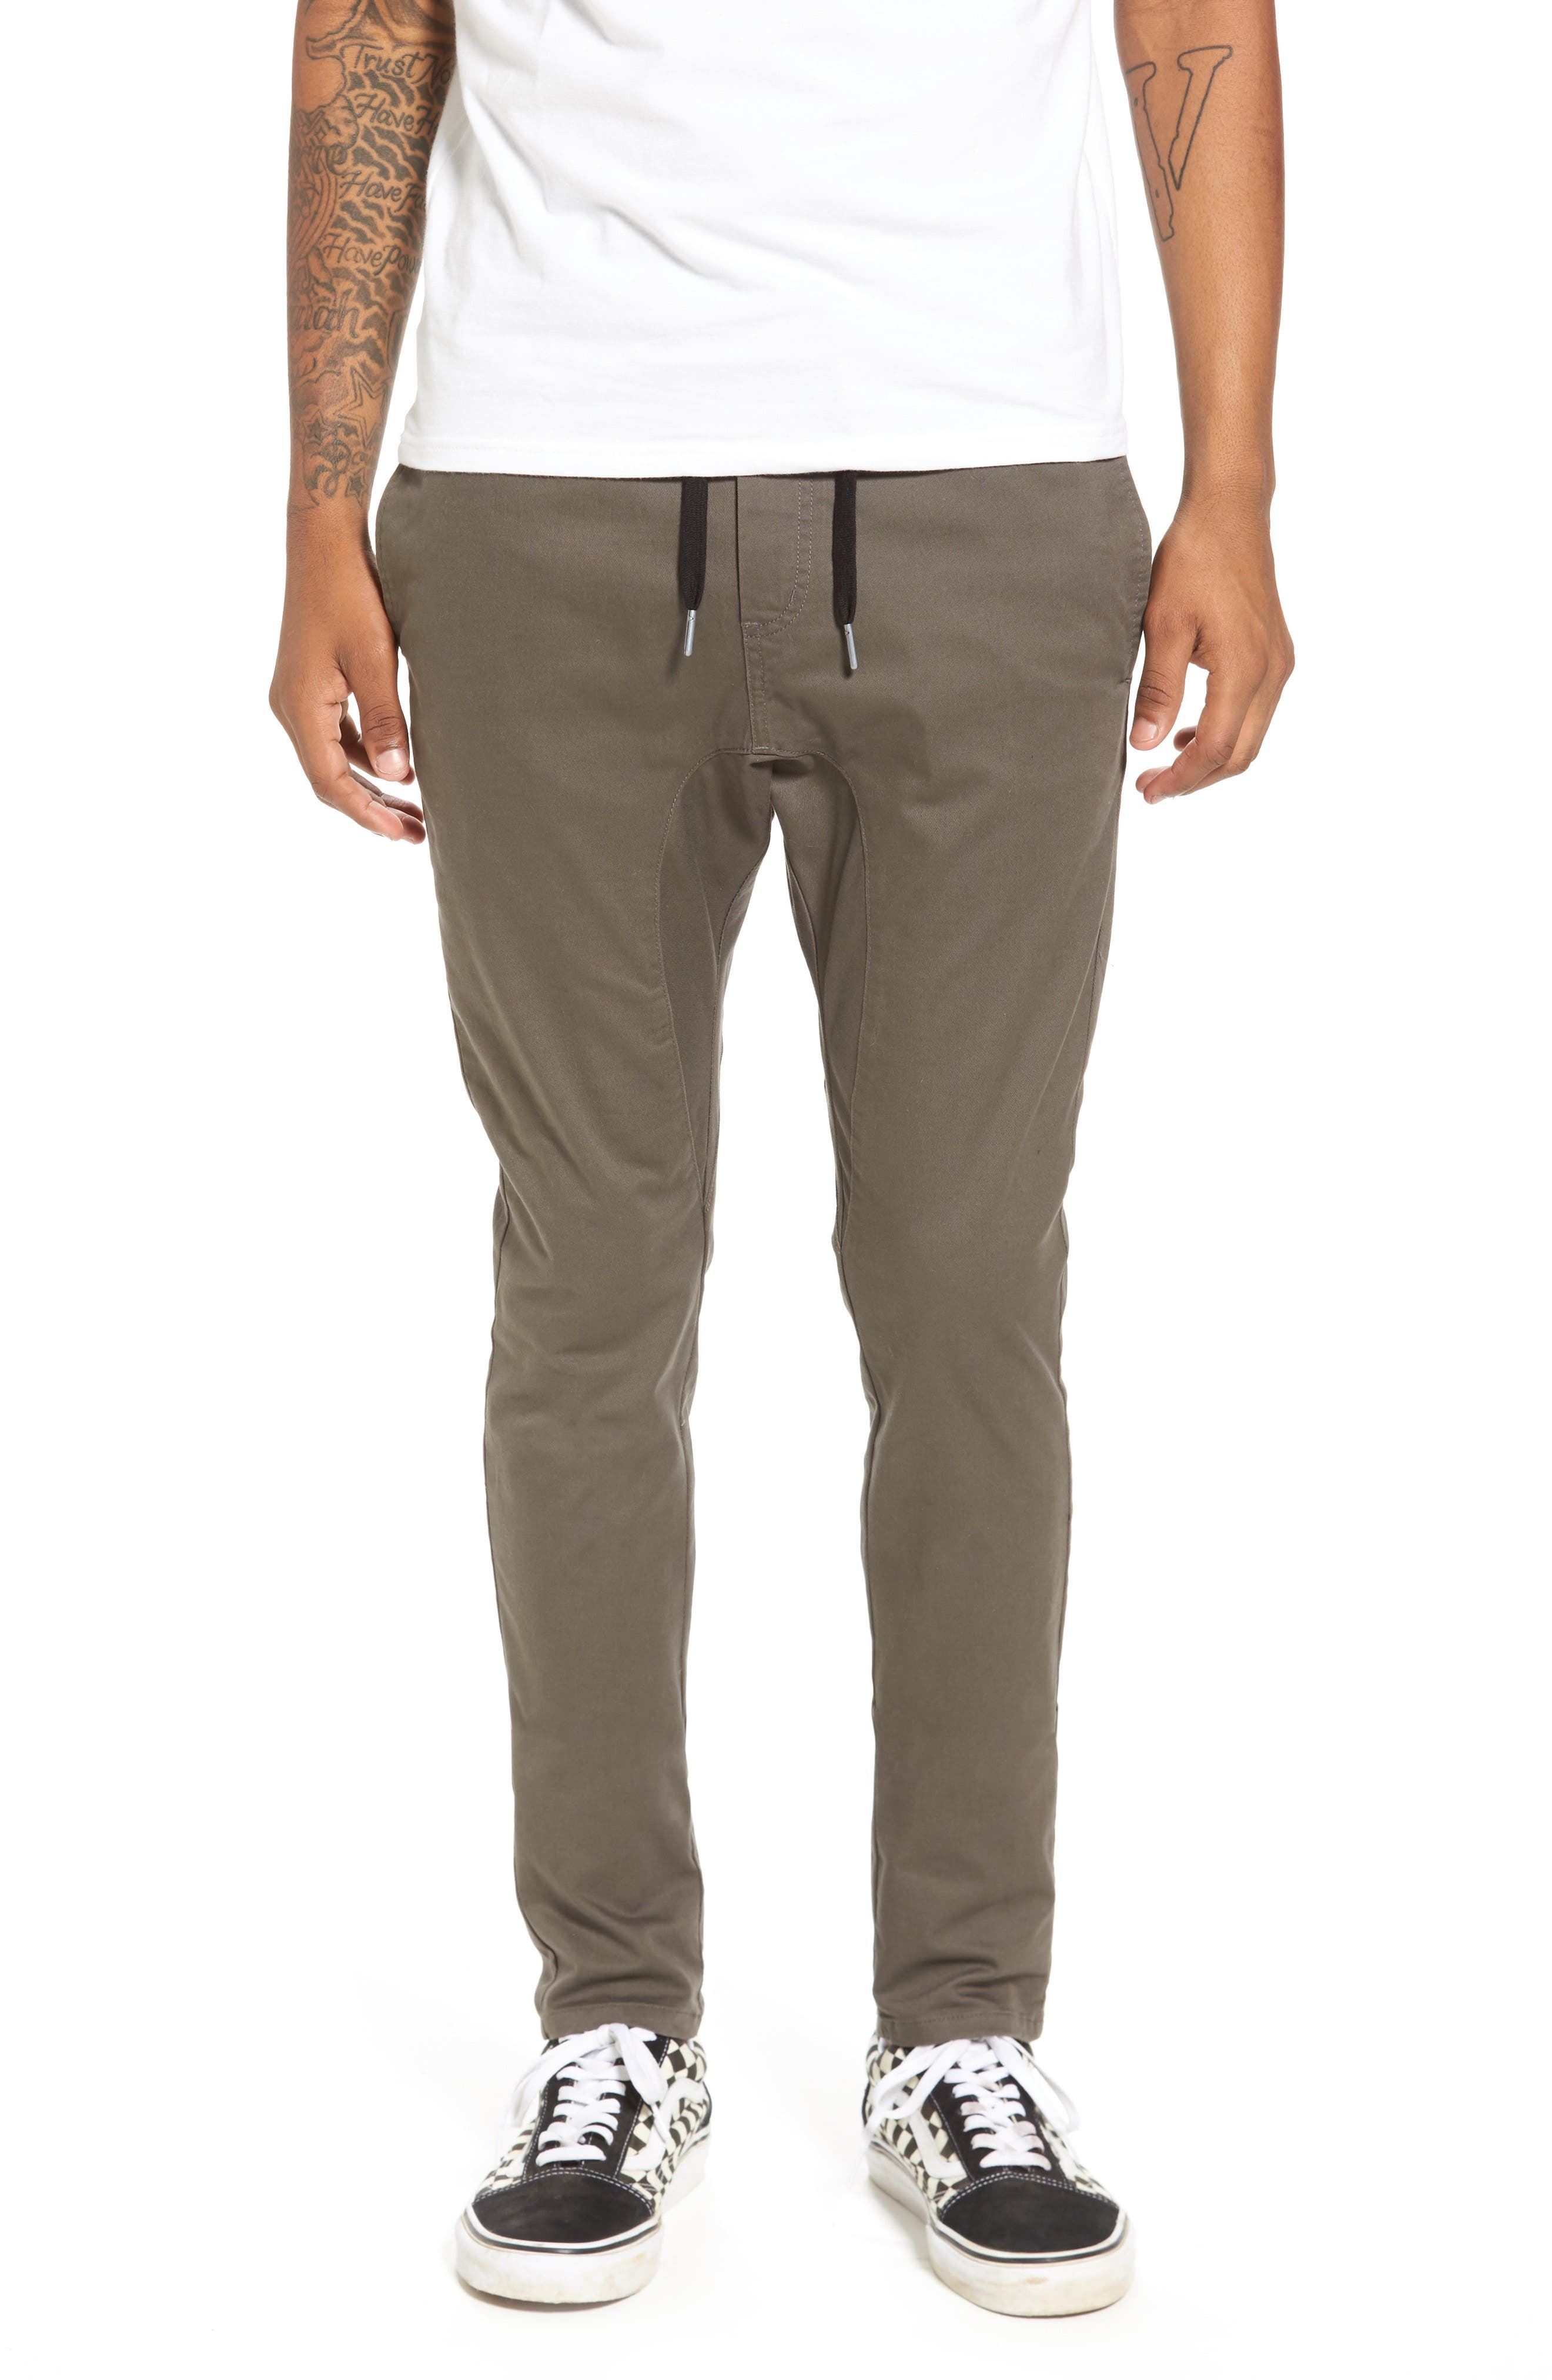 Salerno Stretch Woven Jogger Pants,                         Main,                         color, PEAT